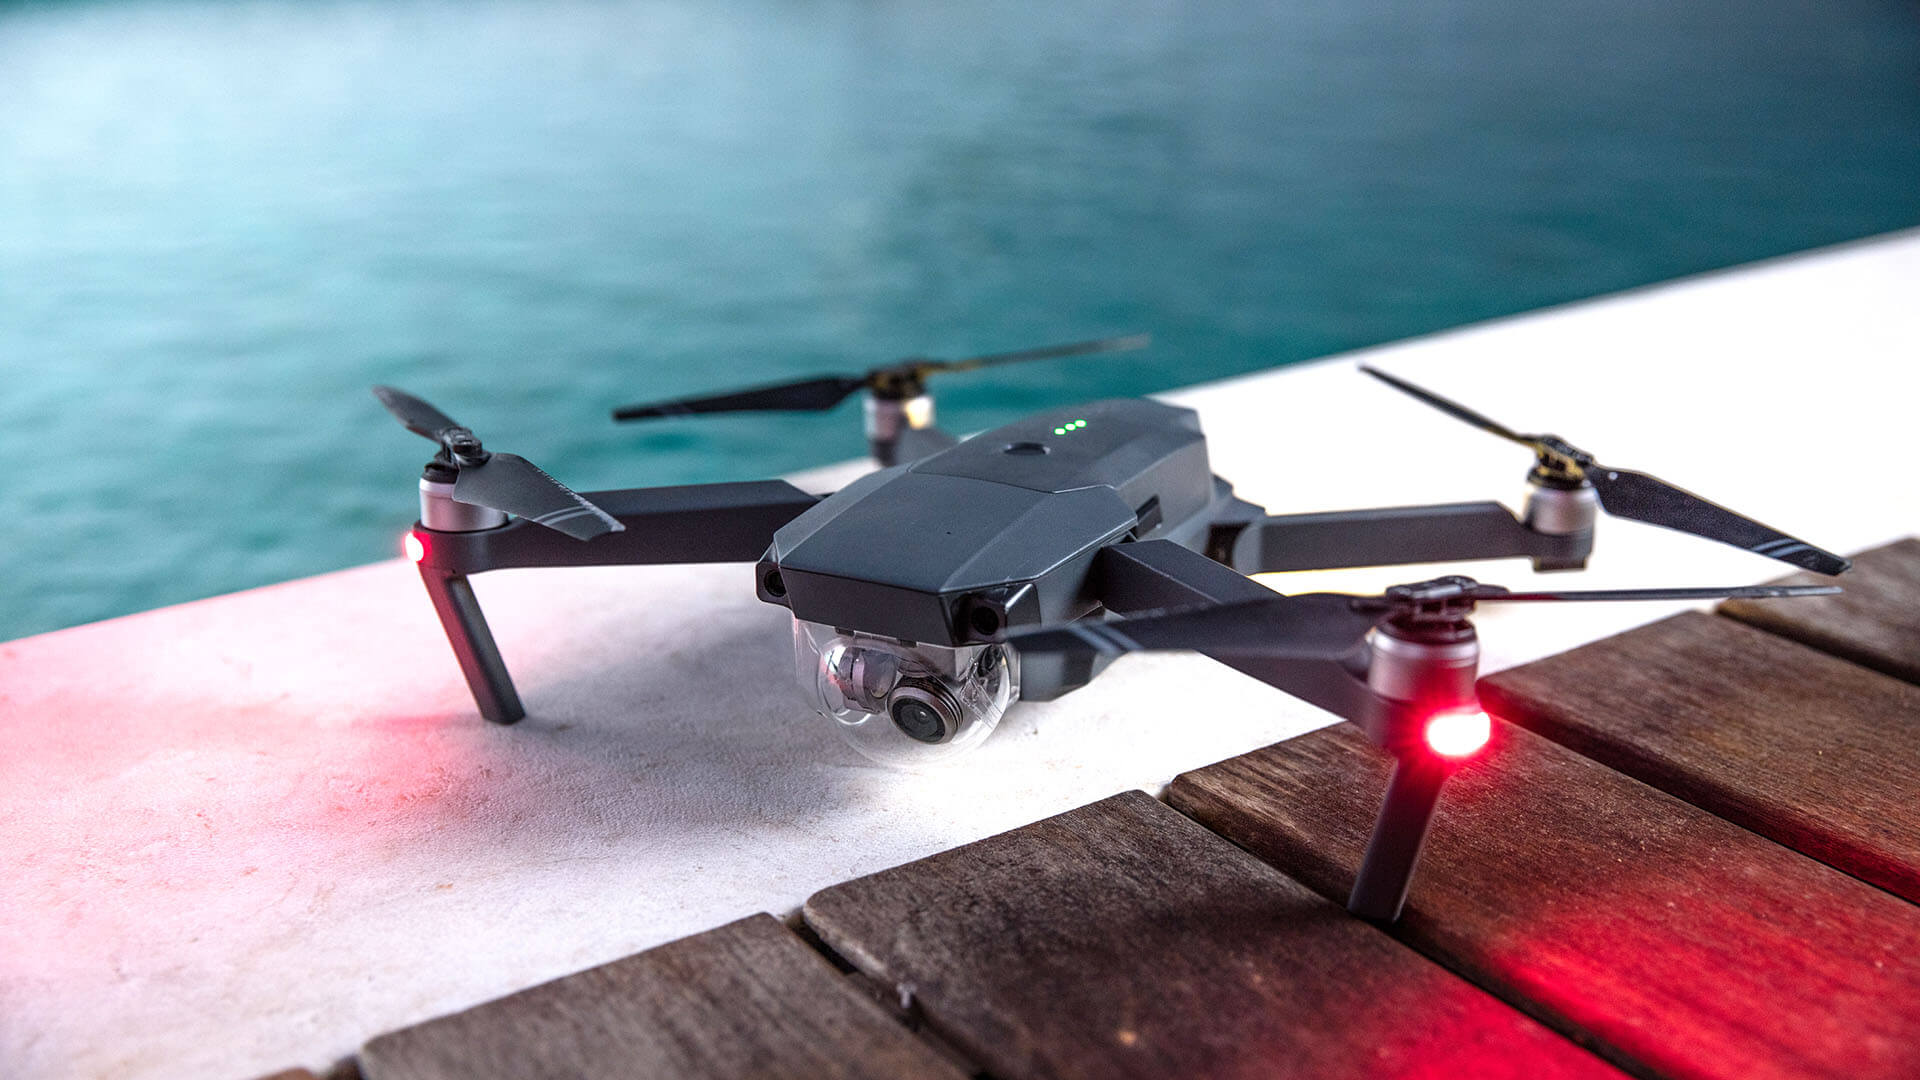 10 Drone Safety Tips for a Safe Flight - DJI Guides